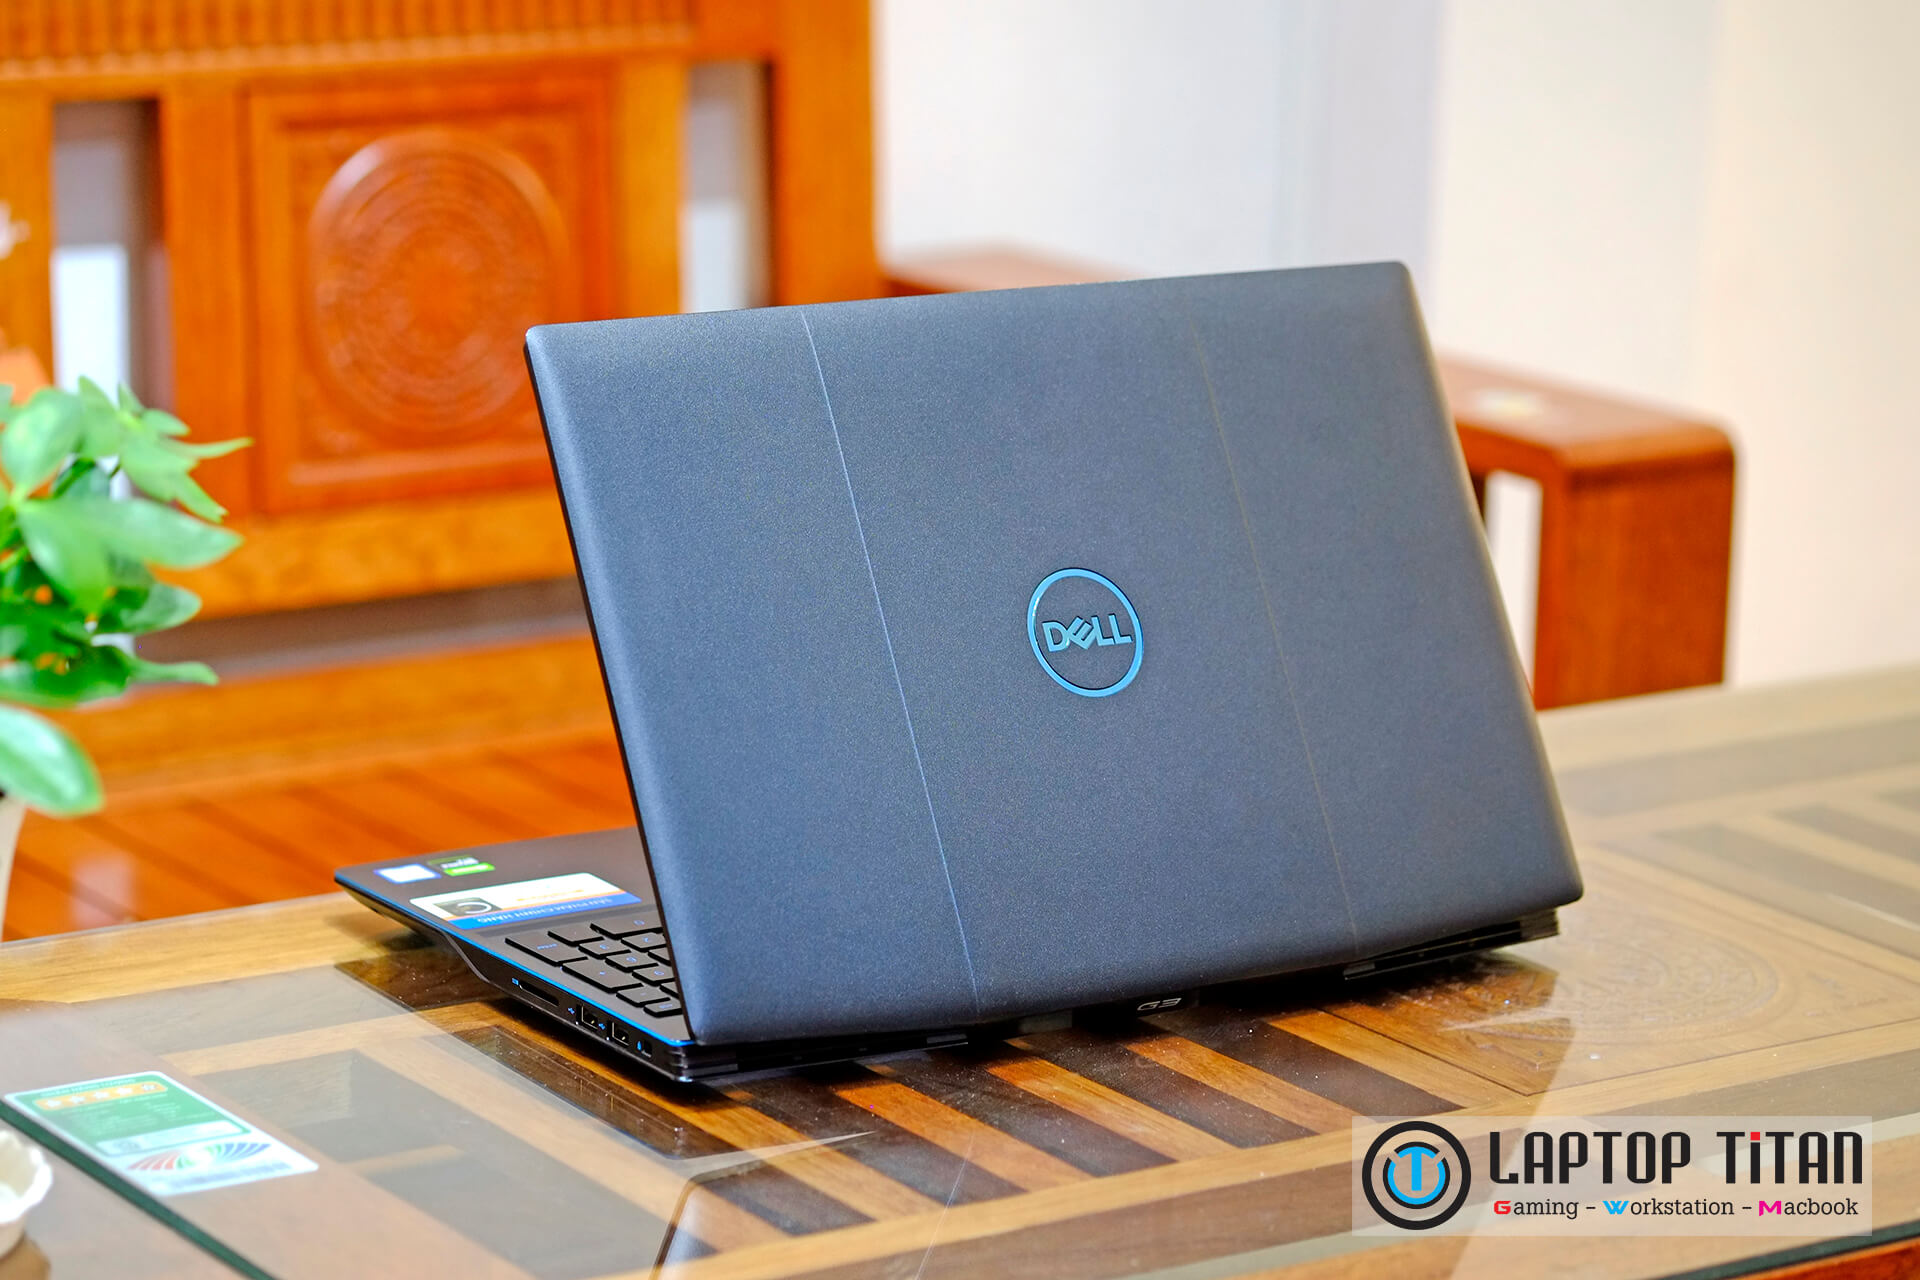 Dell G3 3590 laptoptitan 07